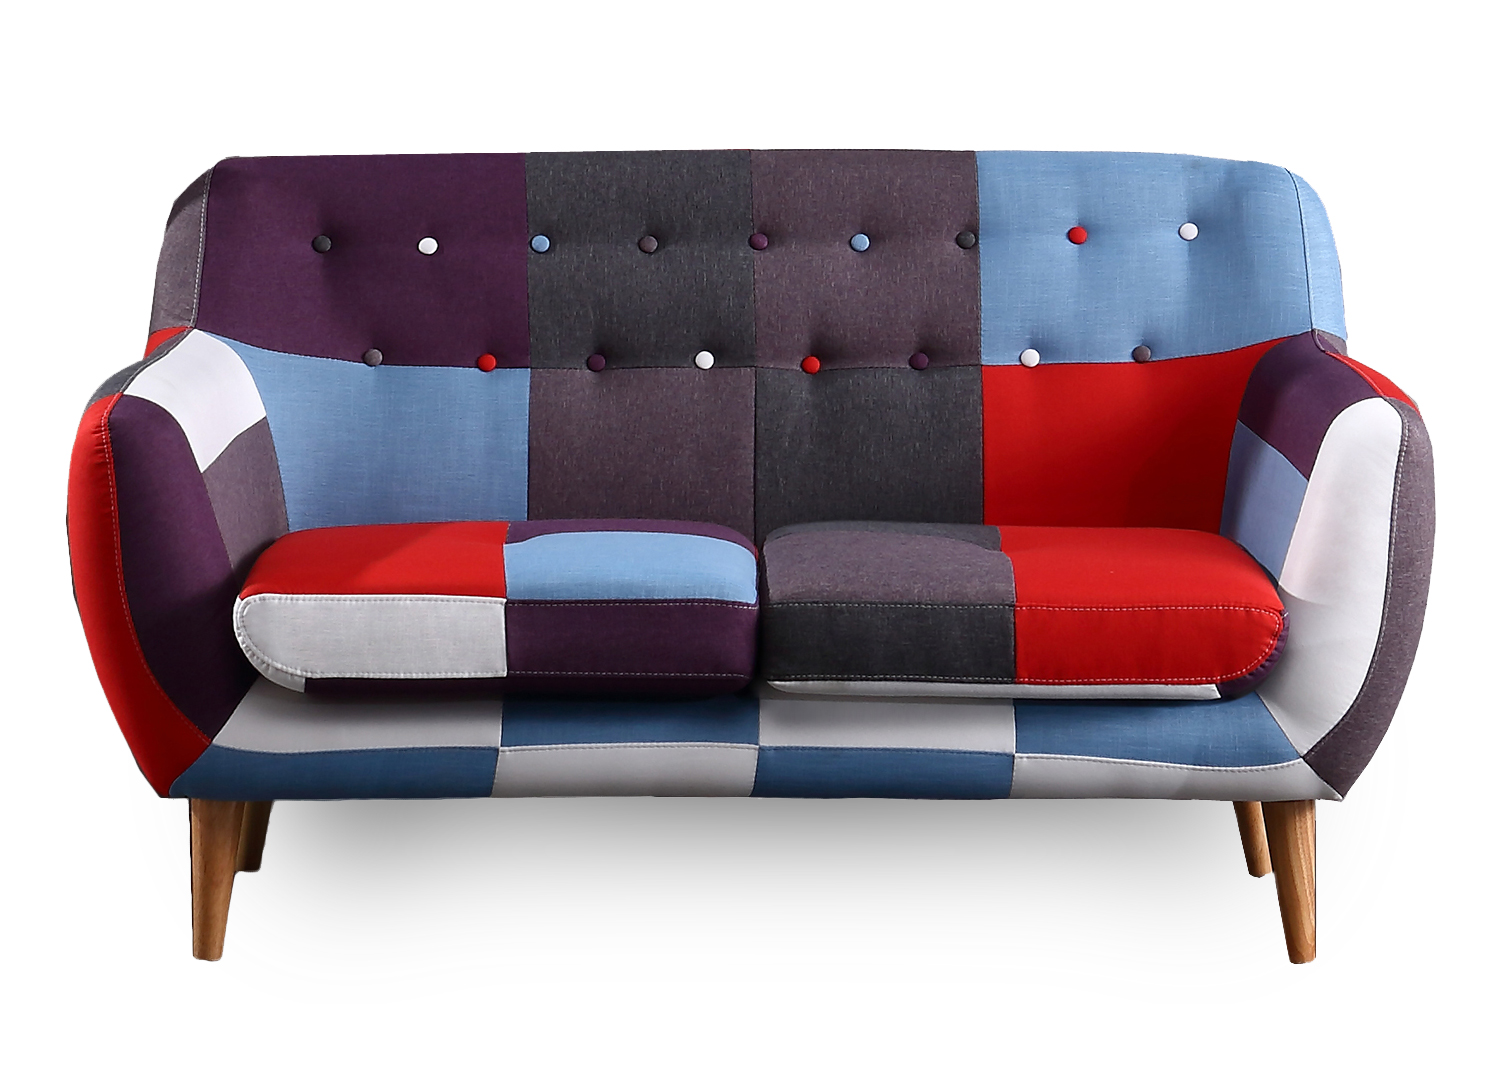 Full Size of Patchwork Corner Sofa Dfs Cover Bed Doll Couch Chesterfield 2 Seater Multi Coloured Ideal For Small Space U Form Xxl Big Günstig Antik Bezug Ecksofa Mit Sofa Sofa Patchwork